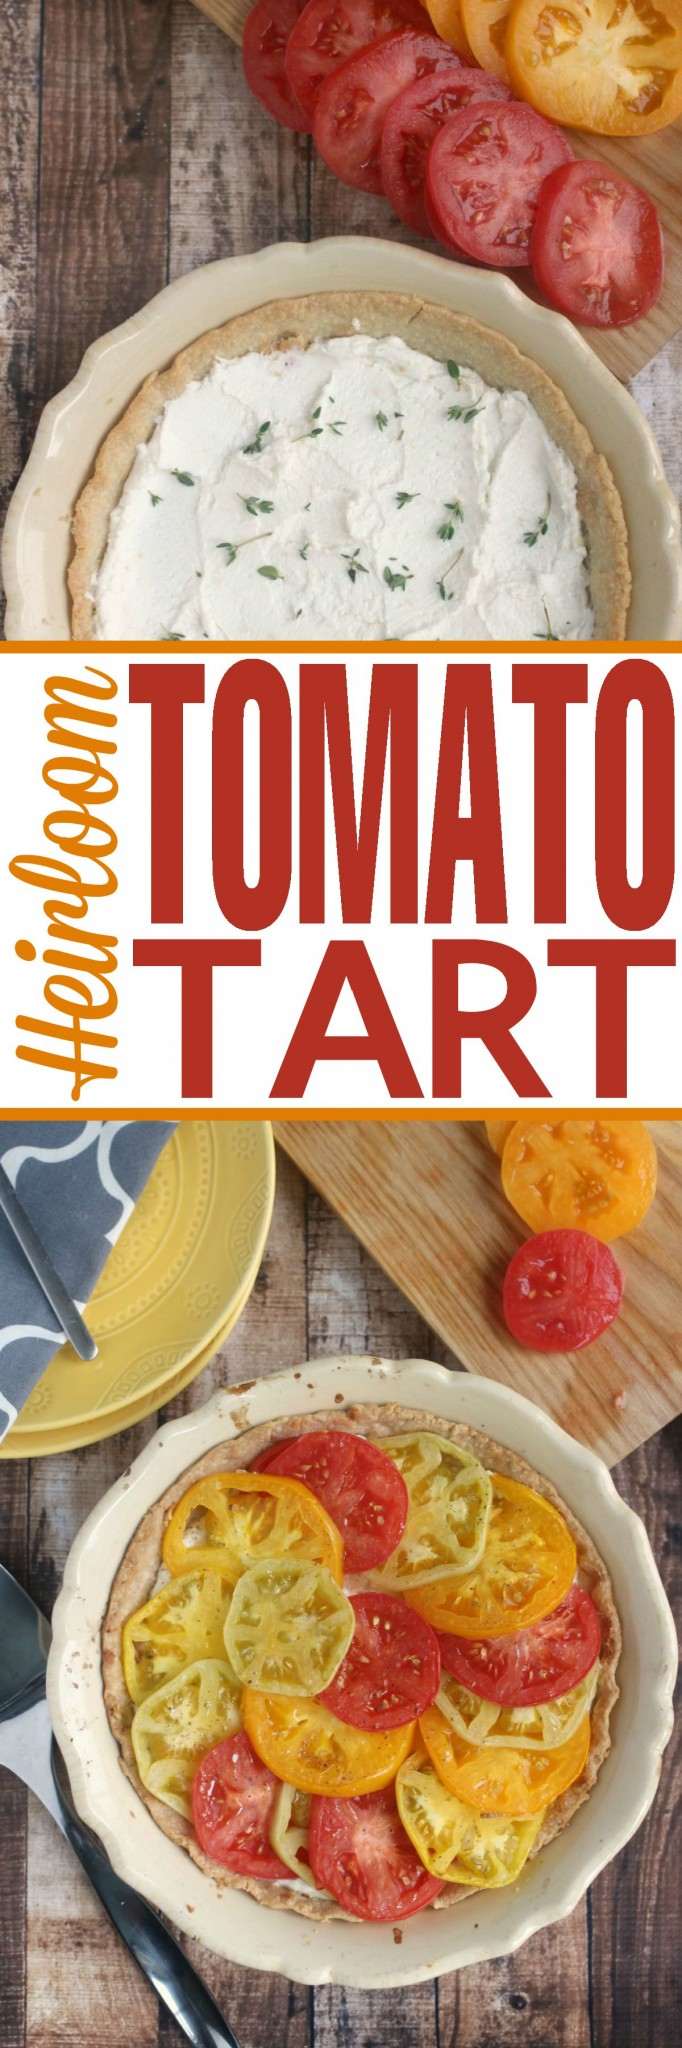 This Heirloom Tomato Tart really highlights the beauty and flavour of garden fresh heirloom tomatoes.  This is a summer recipe that is sure to be a hit!